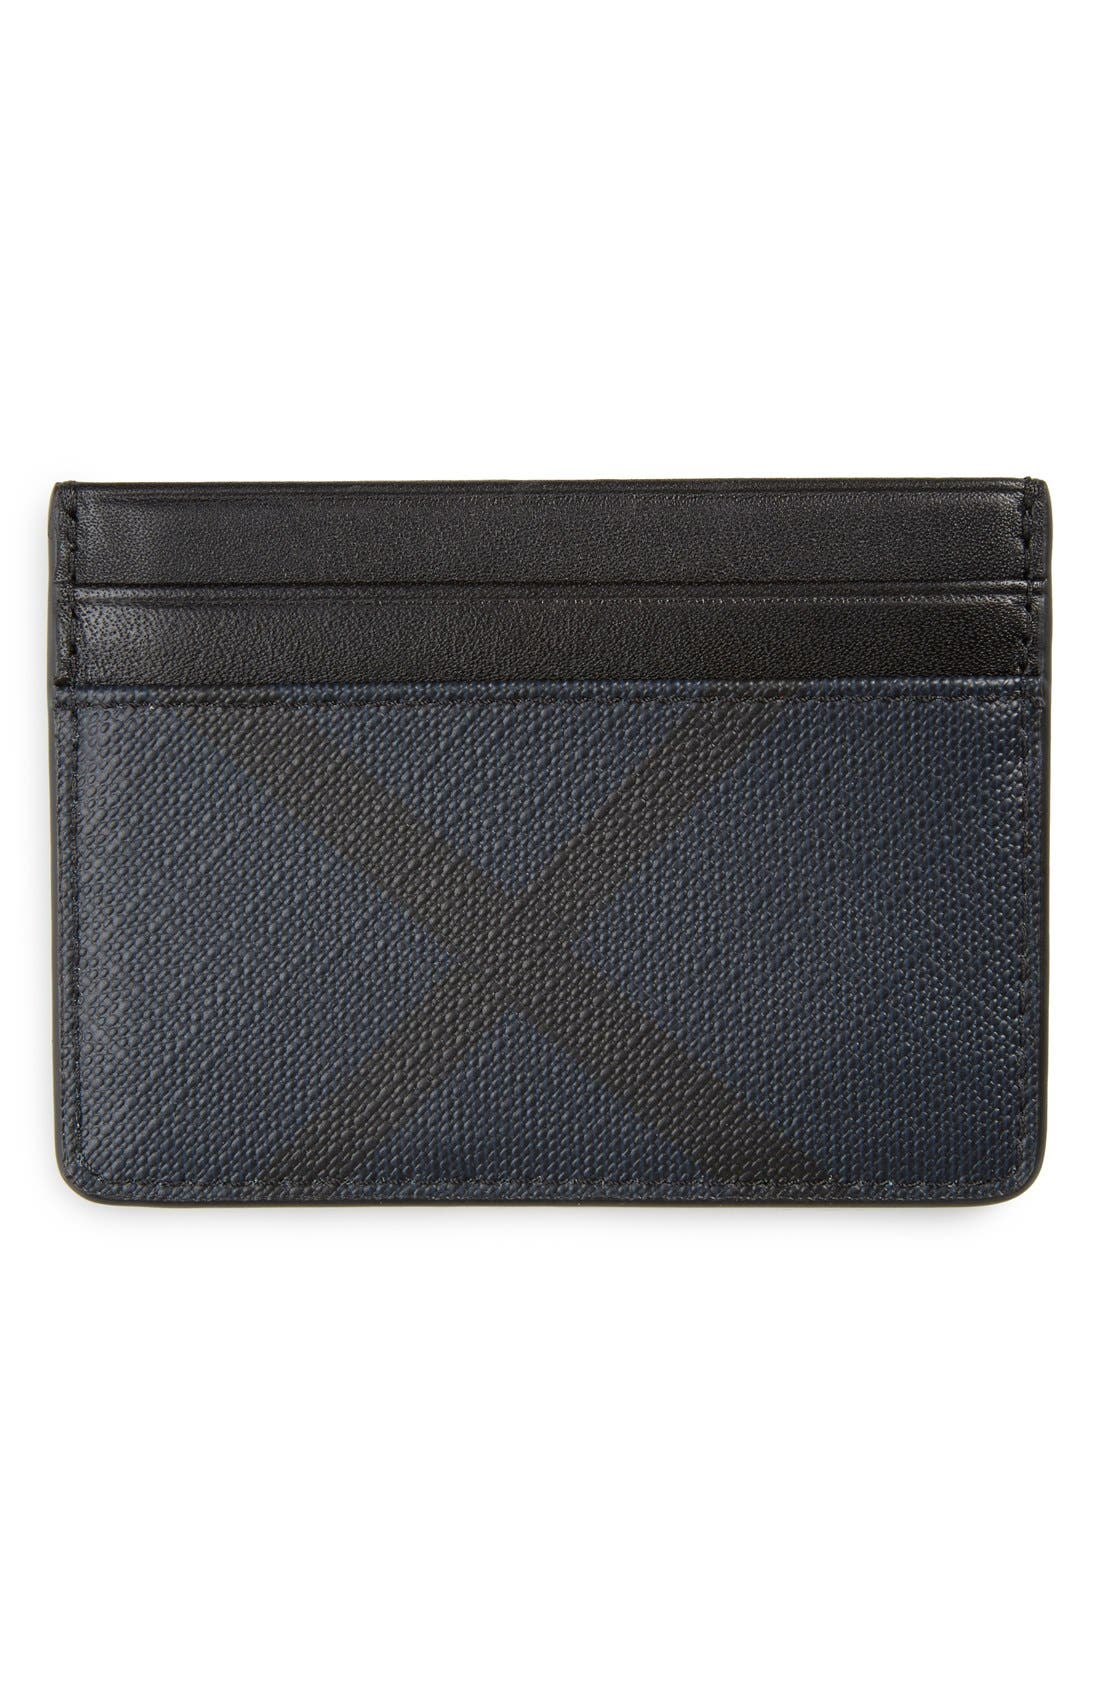 'New London' Check Card Case,                             Alternate thumbnail 2, color,                             Navy/ Black